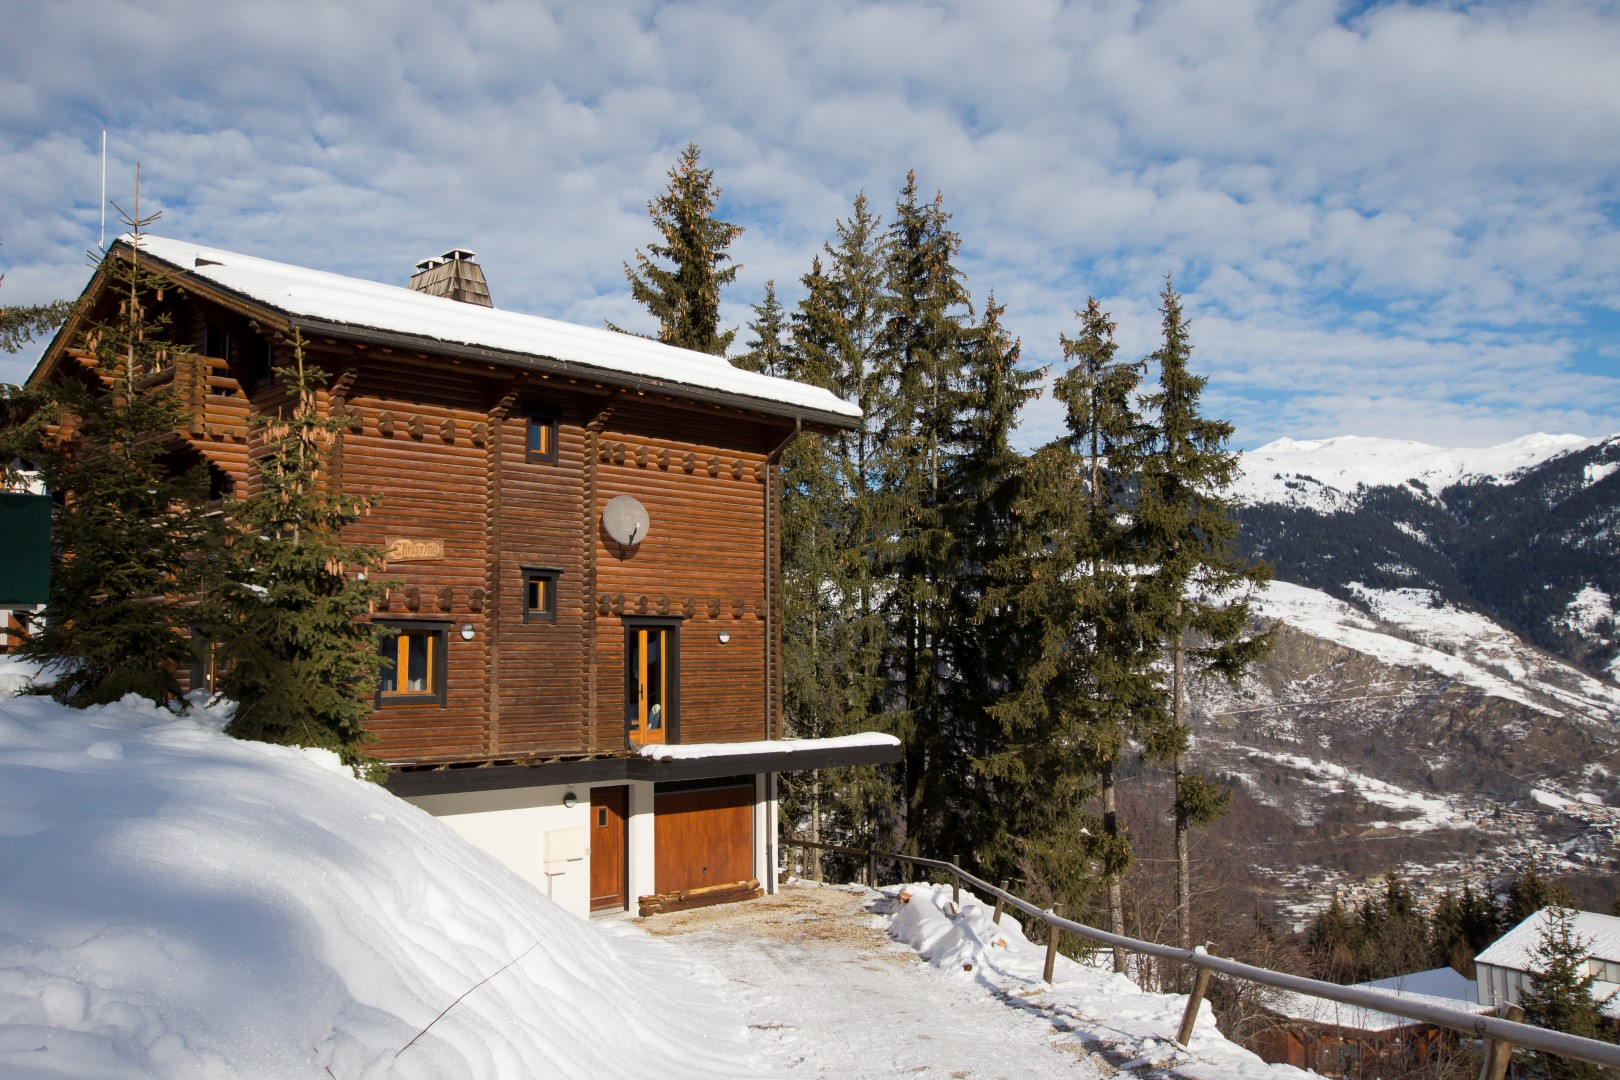 chalet side view